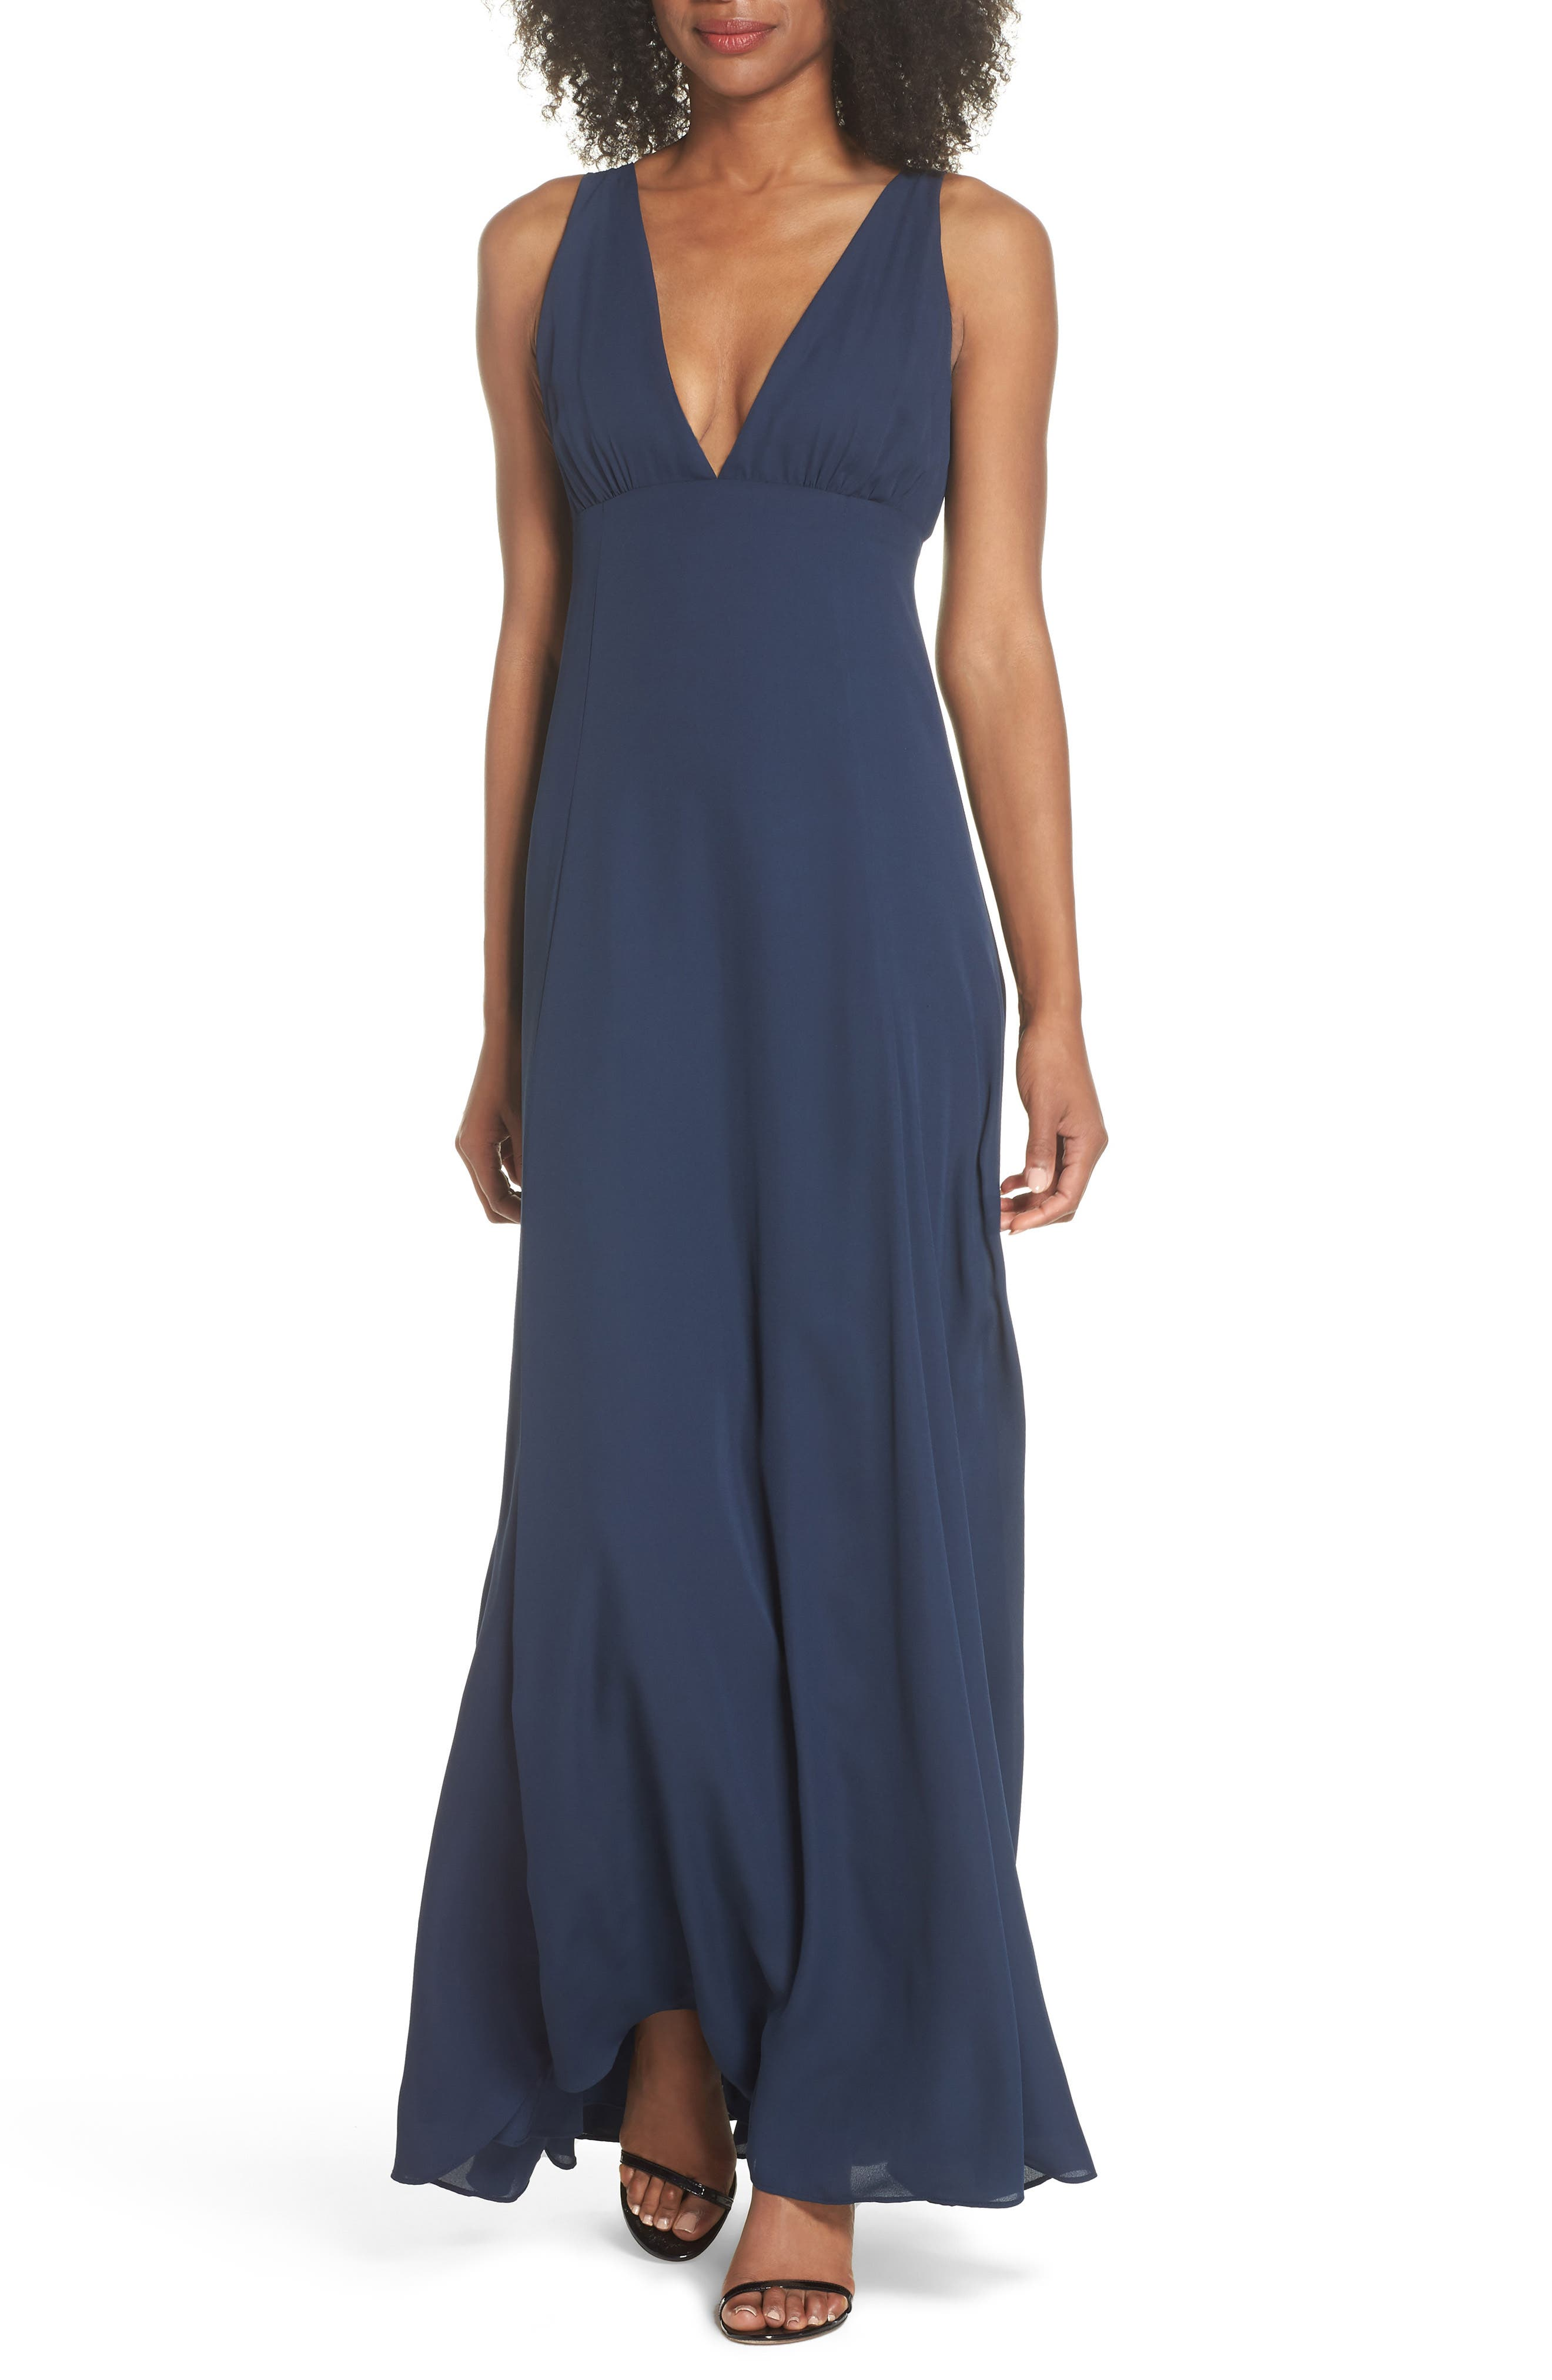 The Kiara Empire Plunge Neck Gown,                             Main thumbnail 1, color,                             NAVY